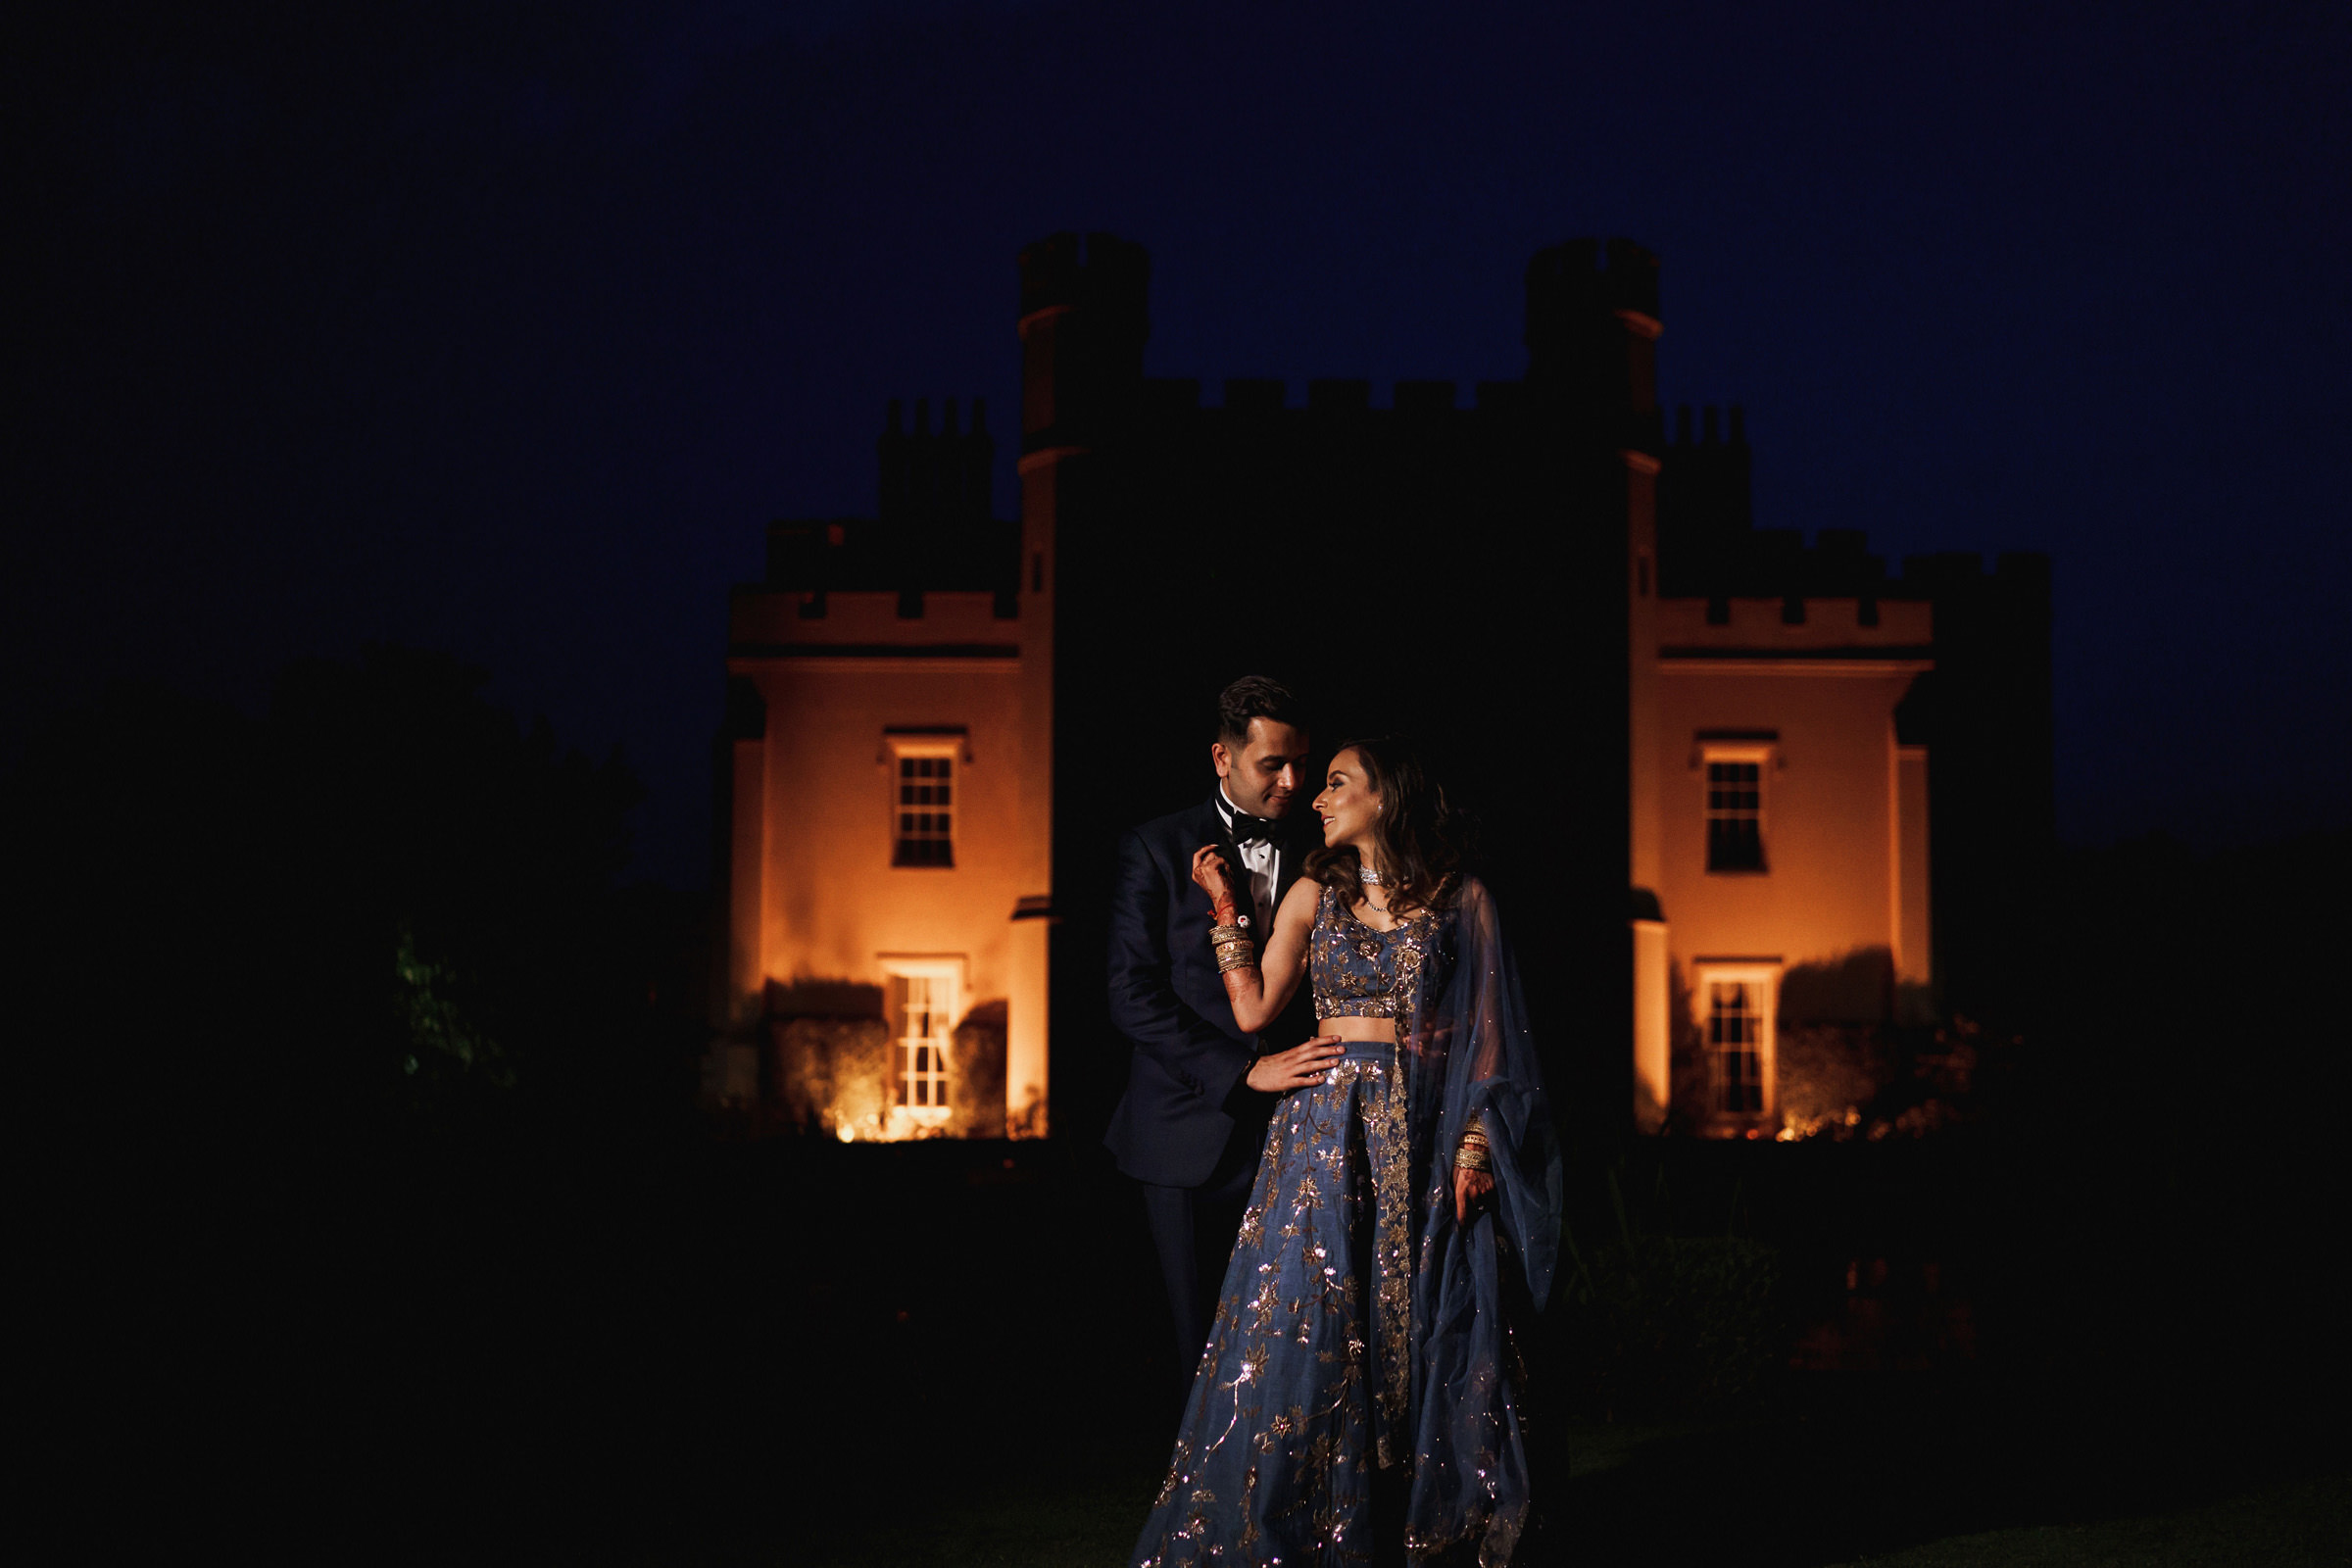 Indian couple at night against Ditton Manor Slough venue  - photo by F5 Photography